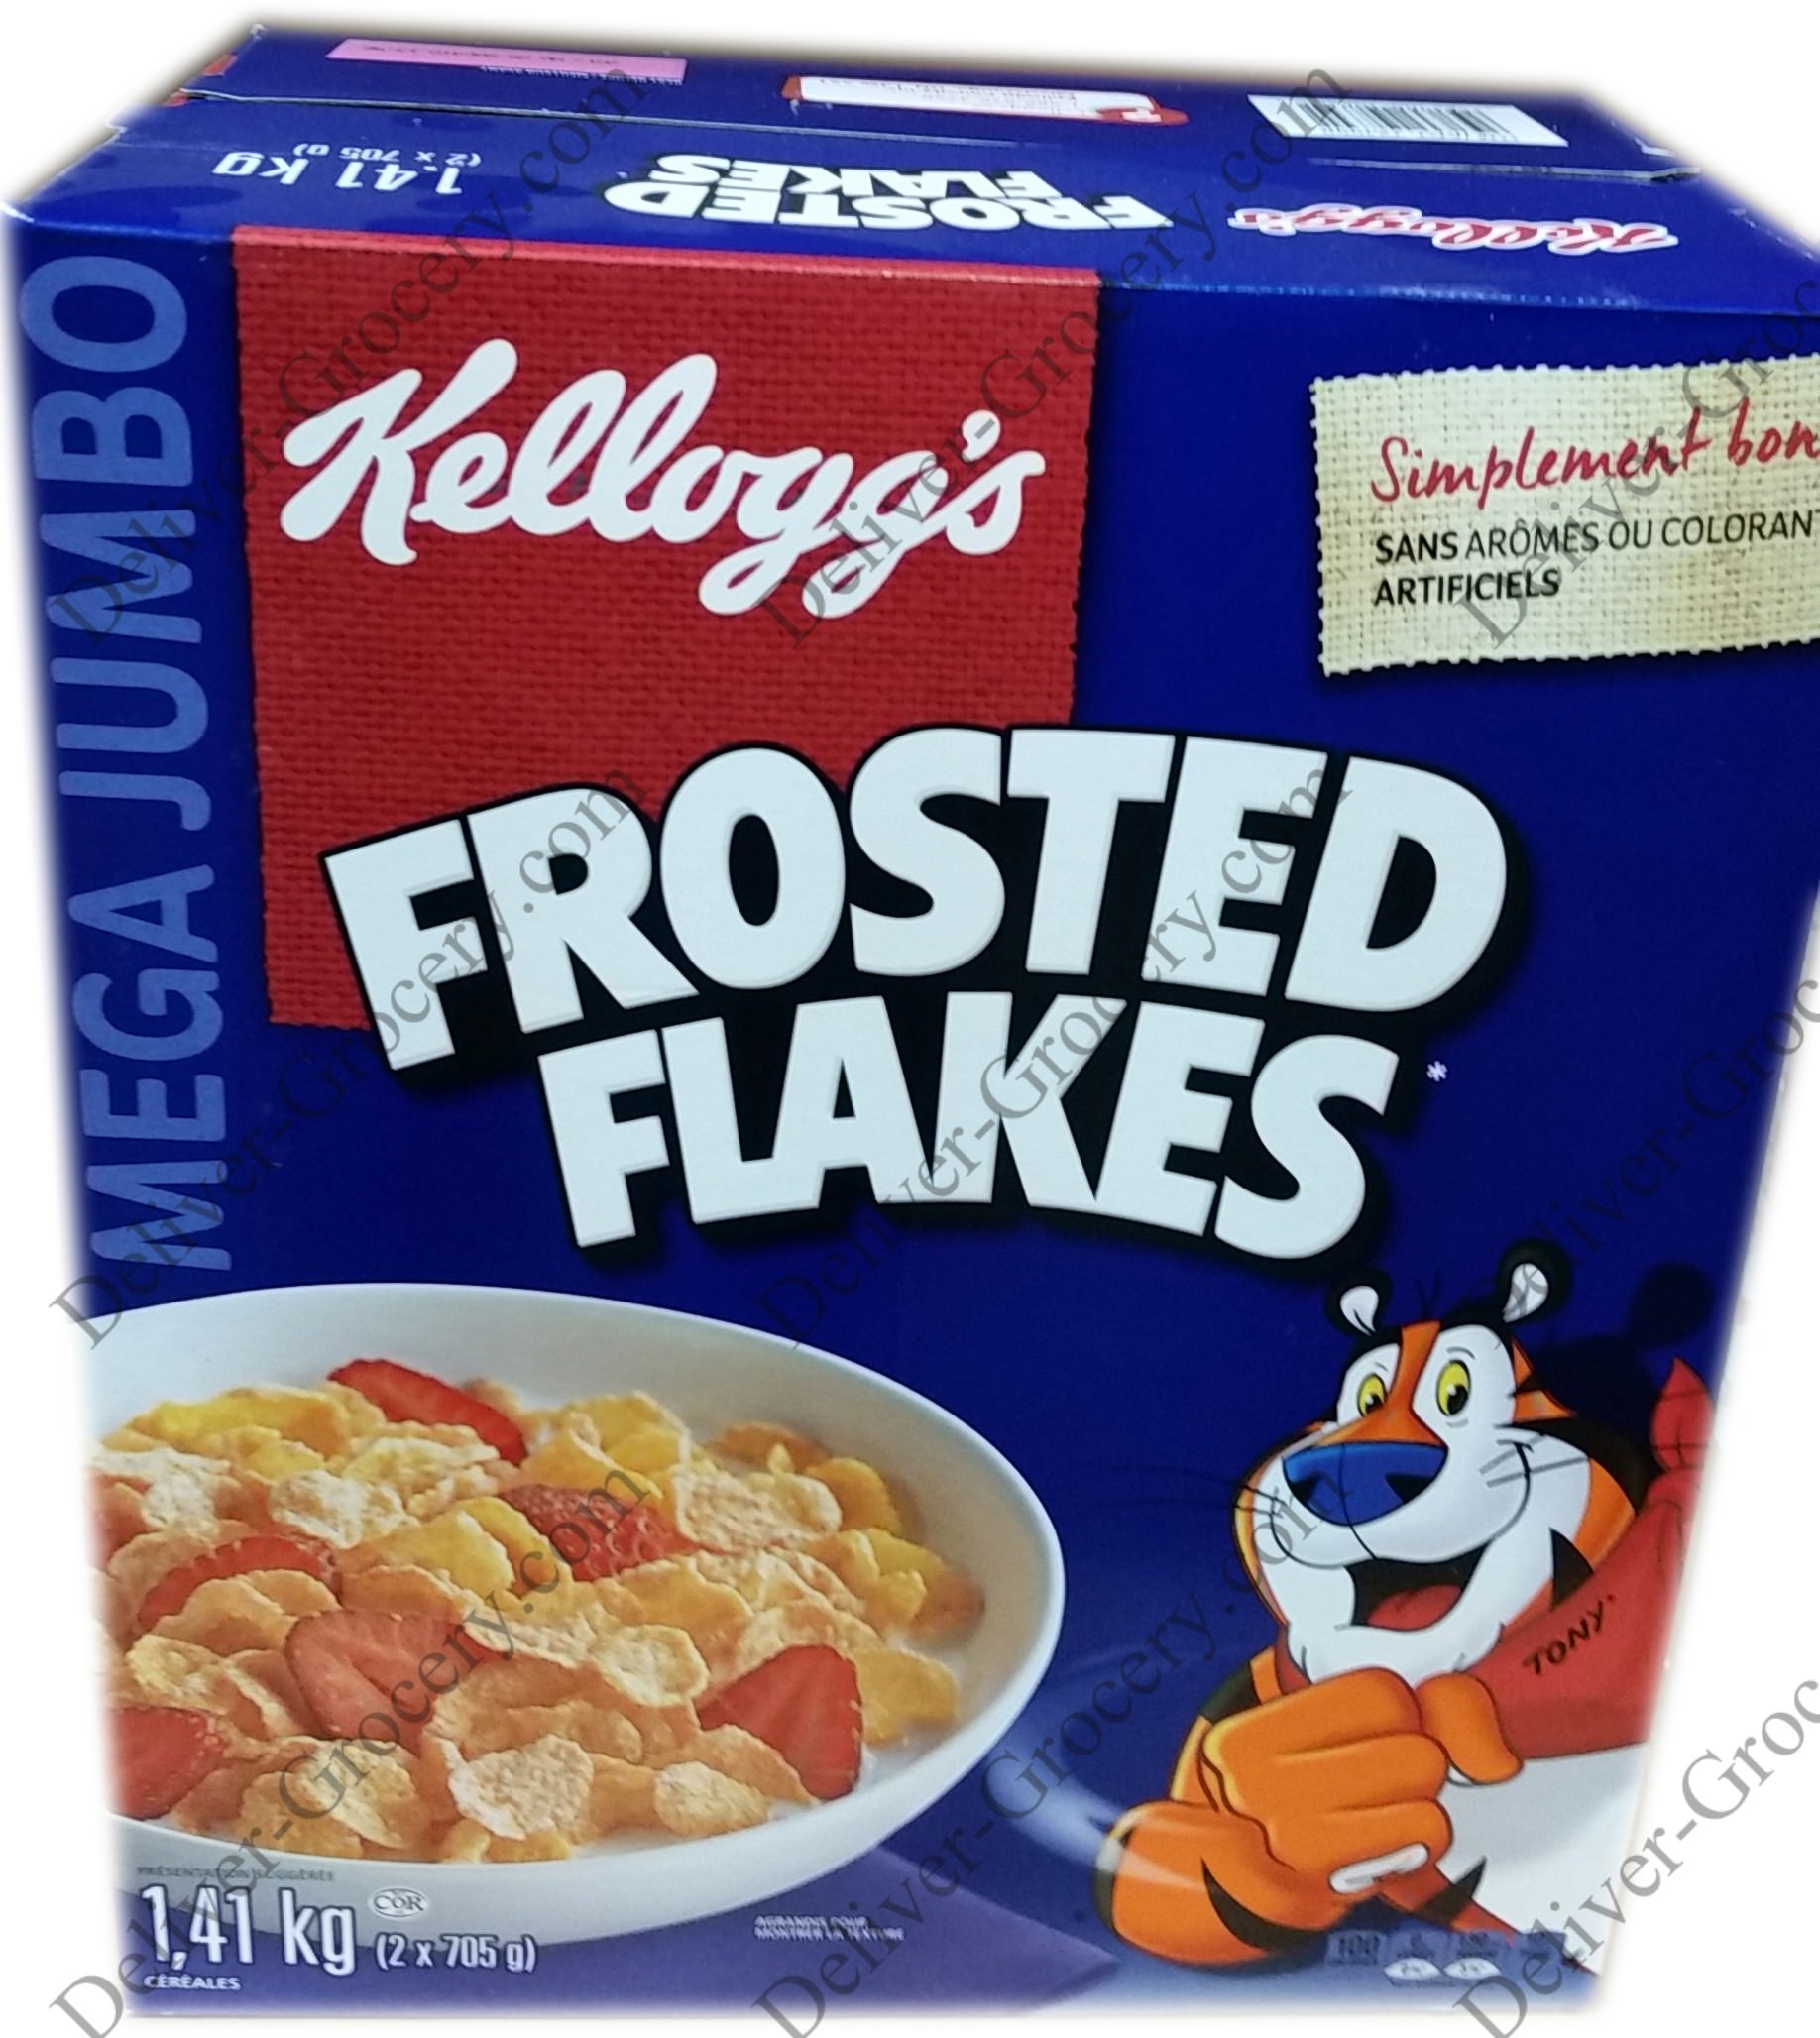 Kelloggs Frosted Flakes 141 Kg Deliver Grocery Online Corn Deal